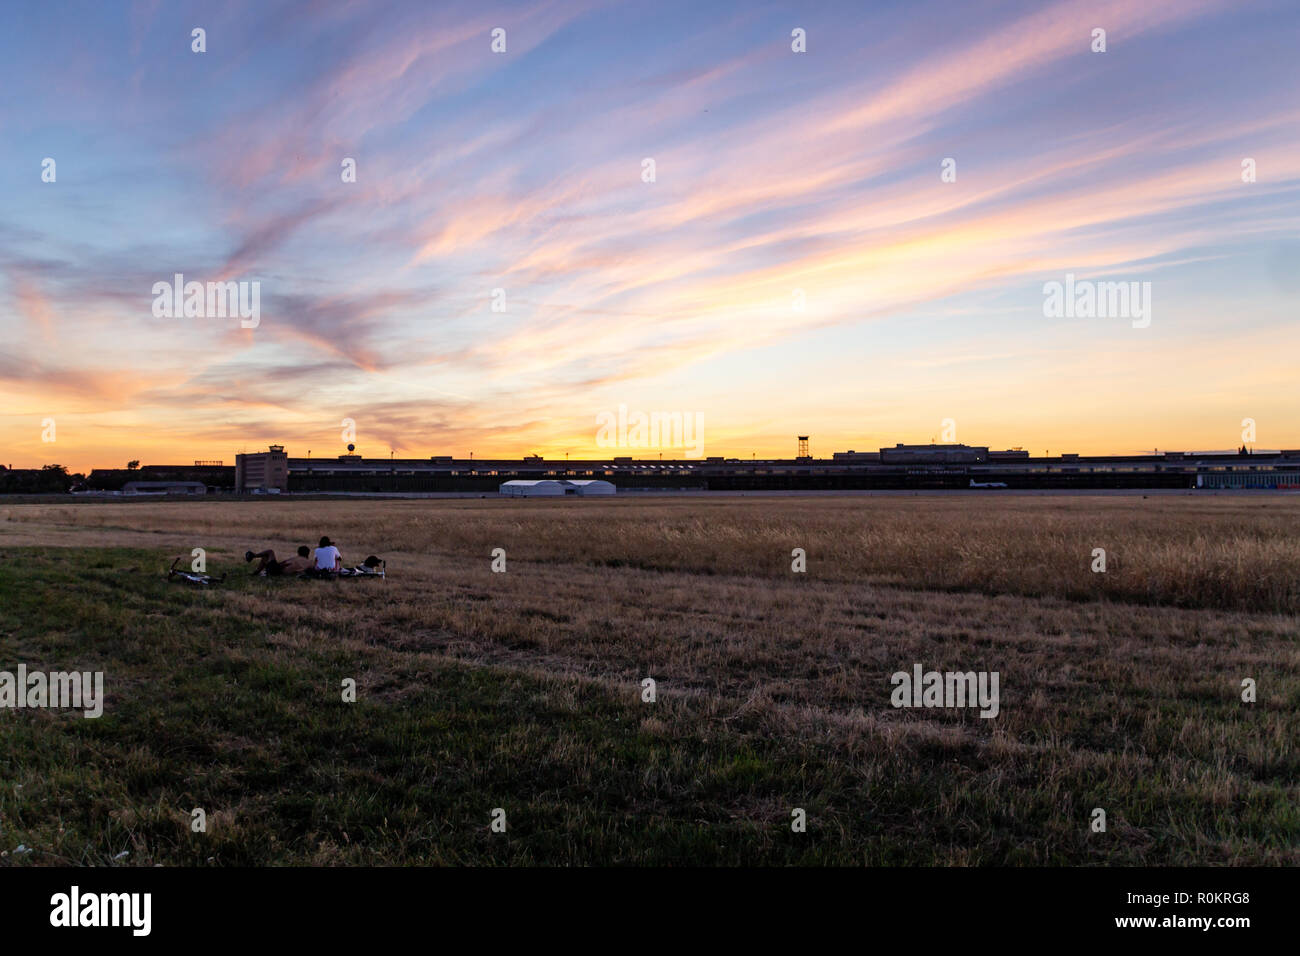 BERLIN, GERMANY - July 29, 2018: The Tempelhofer Field (a former Airport) at Sunset - Stock Image